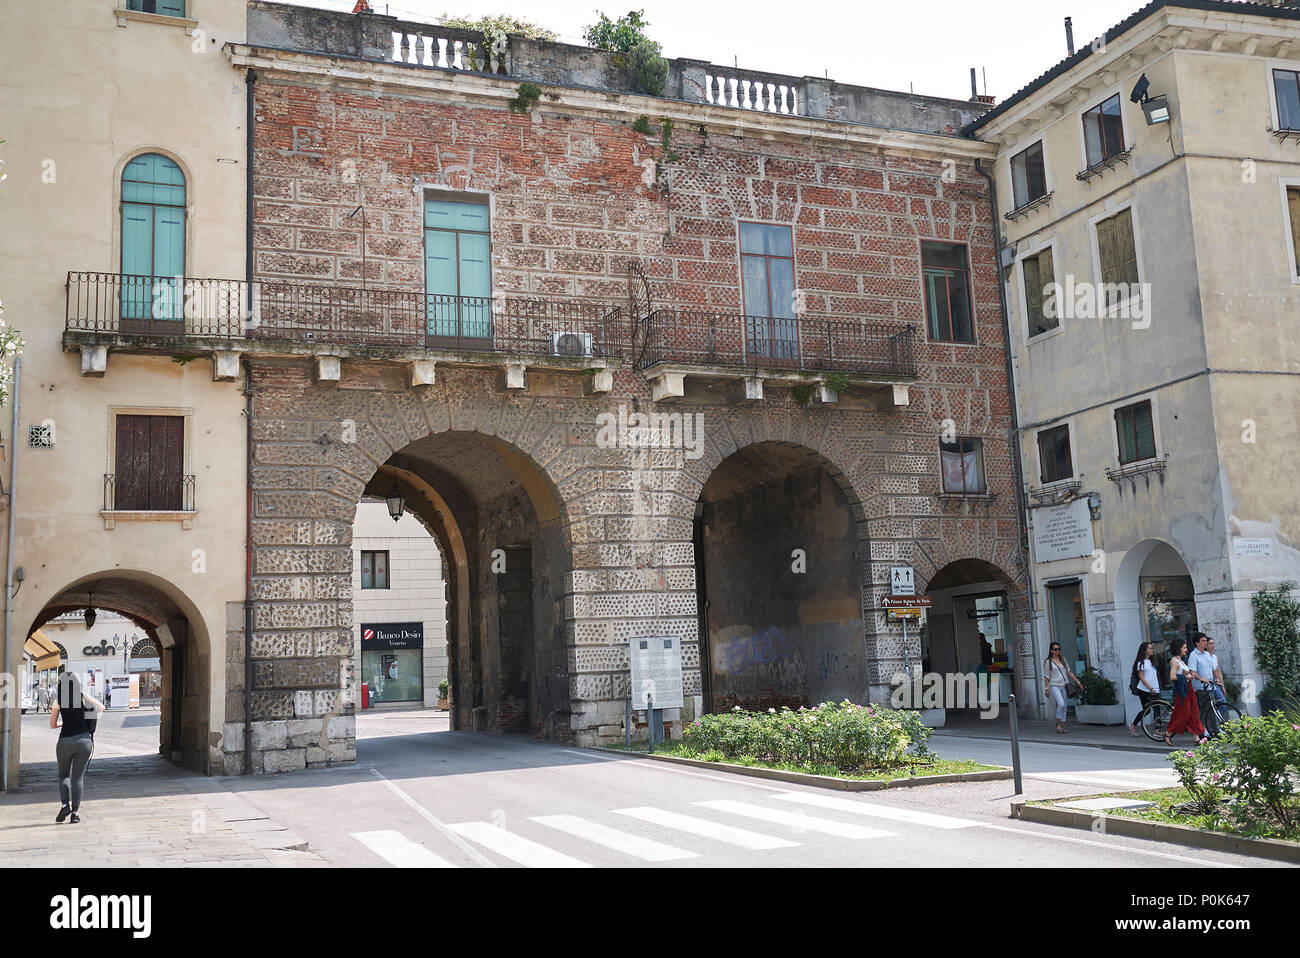 Vicenza Street Scene Stock Photos & Vicenza Street Scene Stock ...